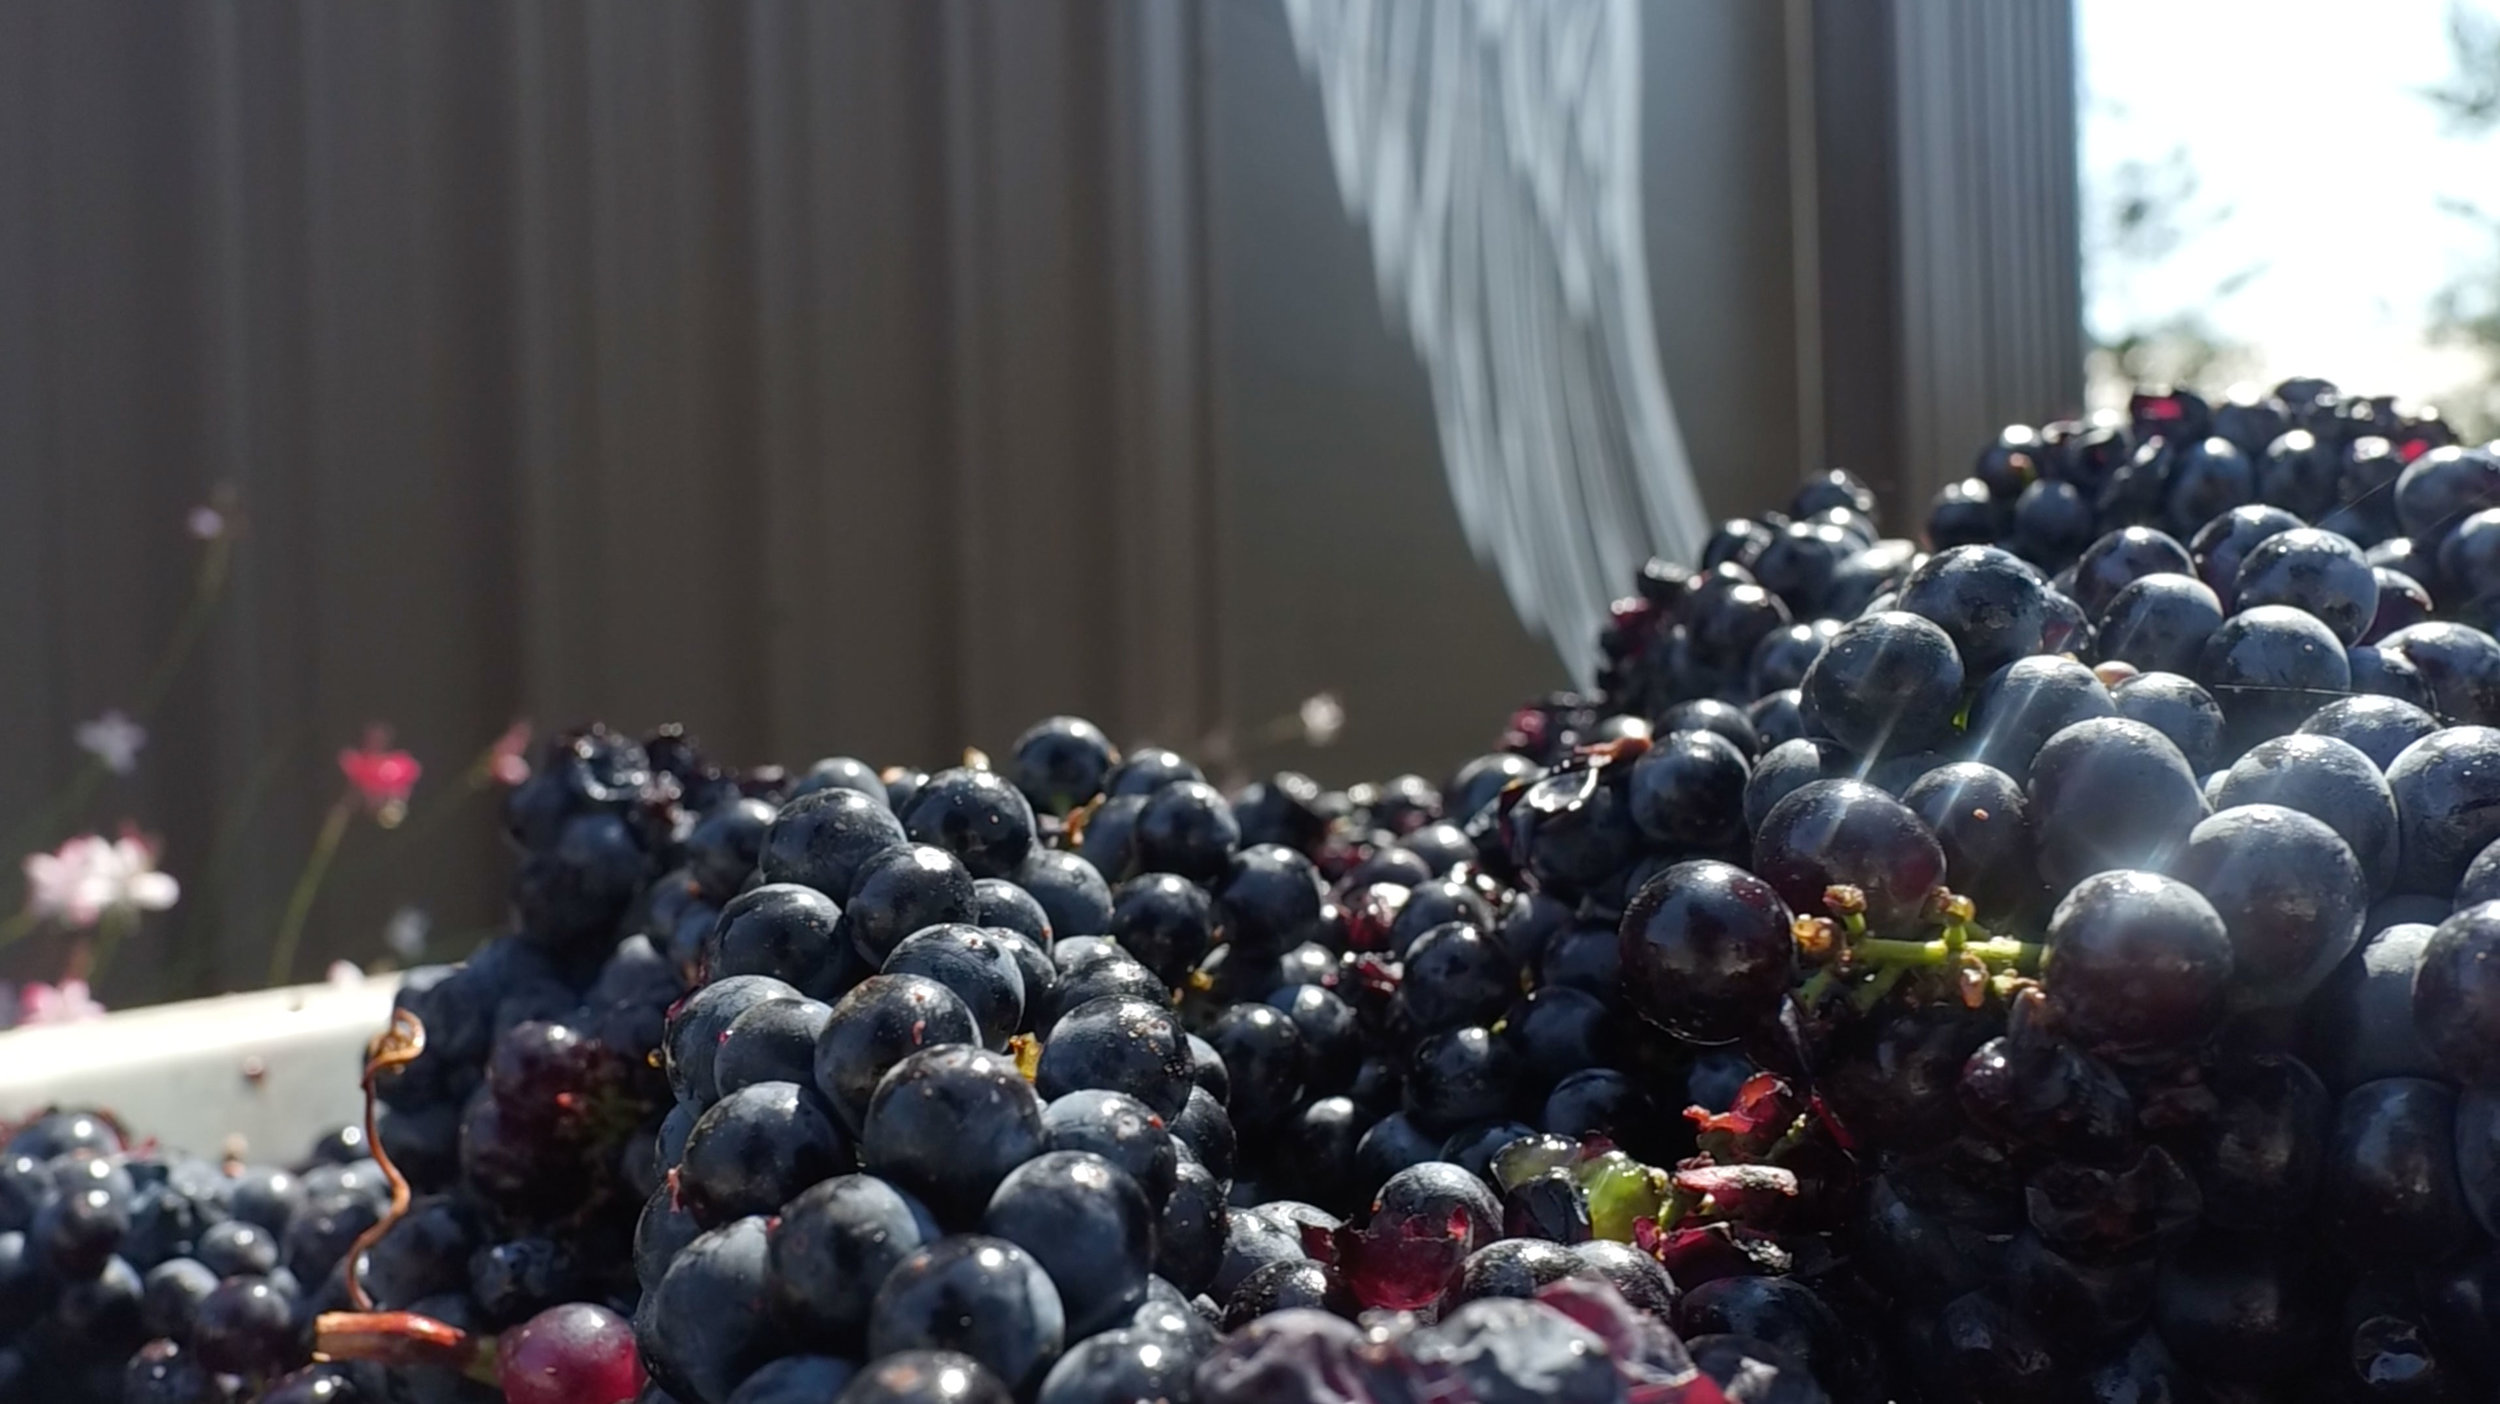 Grapes-Shine-1.jpg